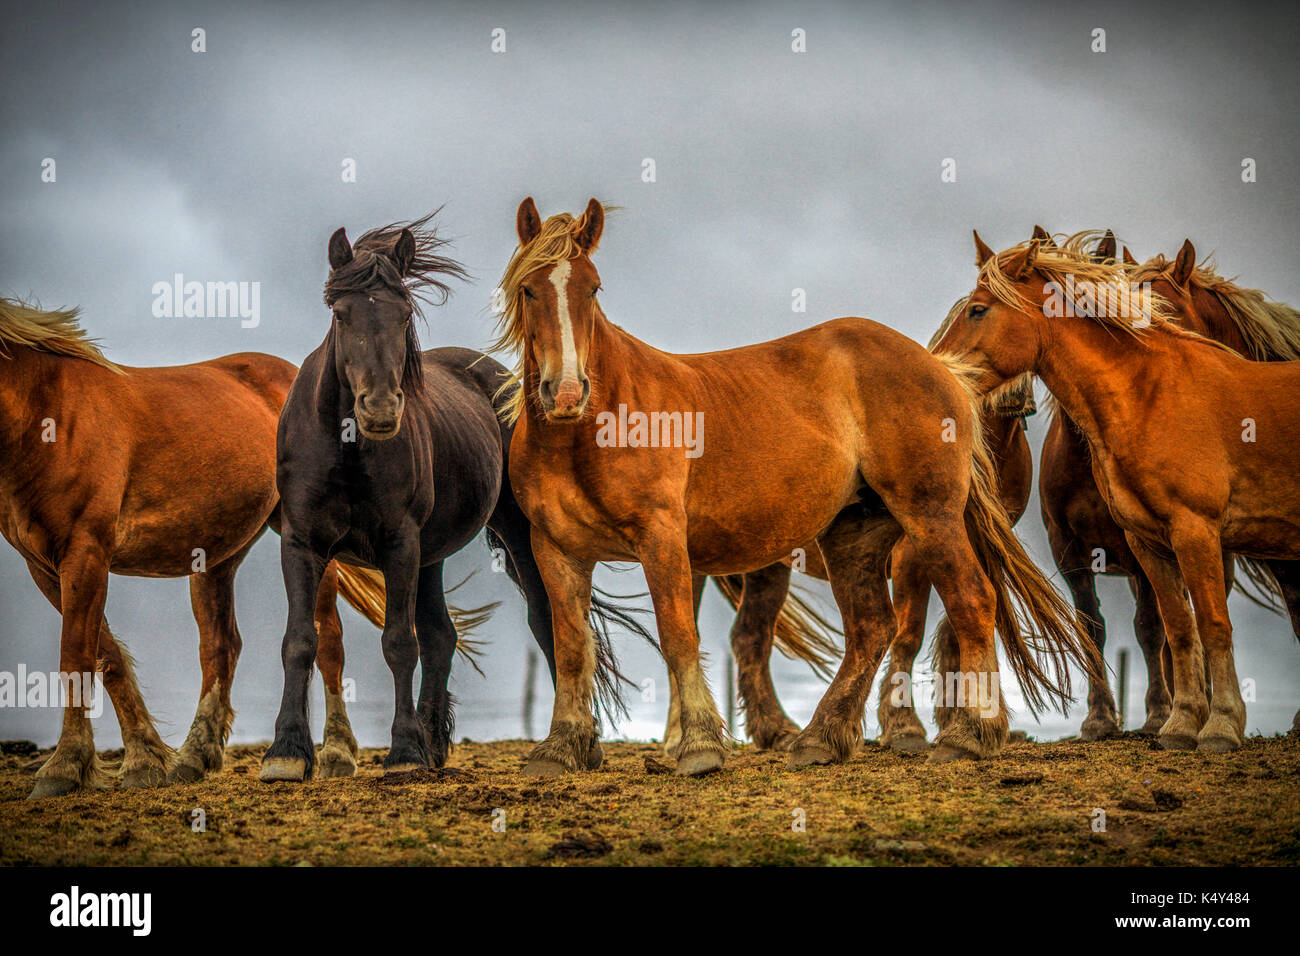 Wild horses, burguete breed, Spain - Stock Image